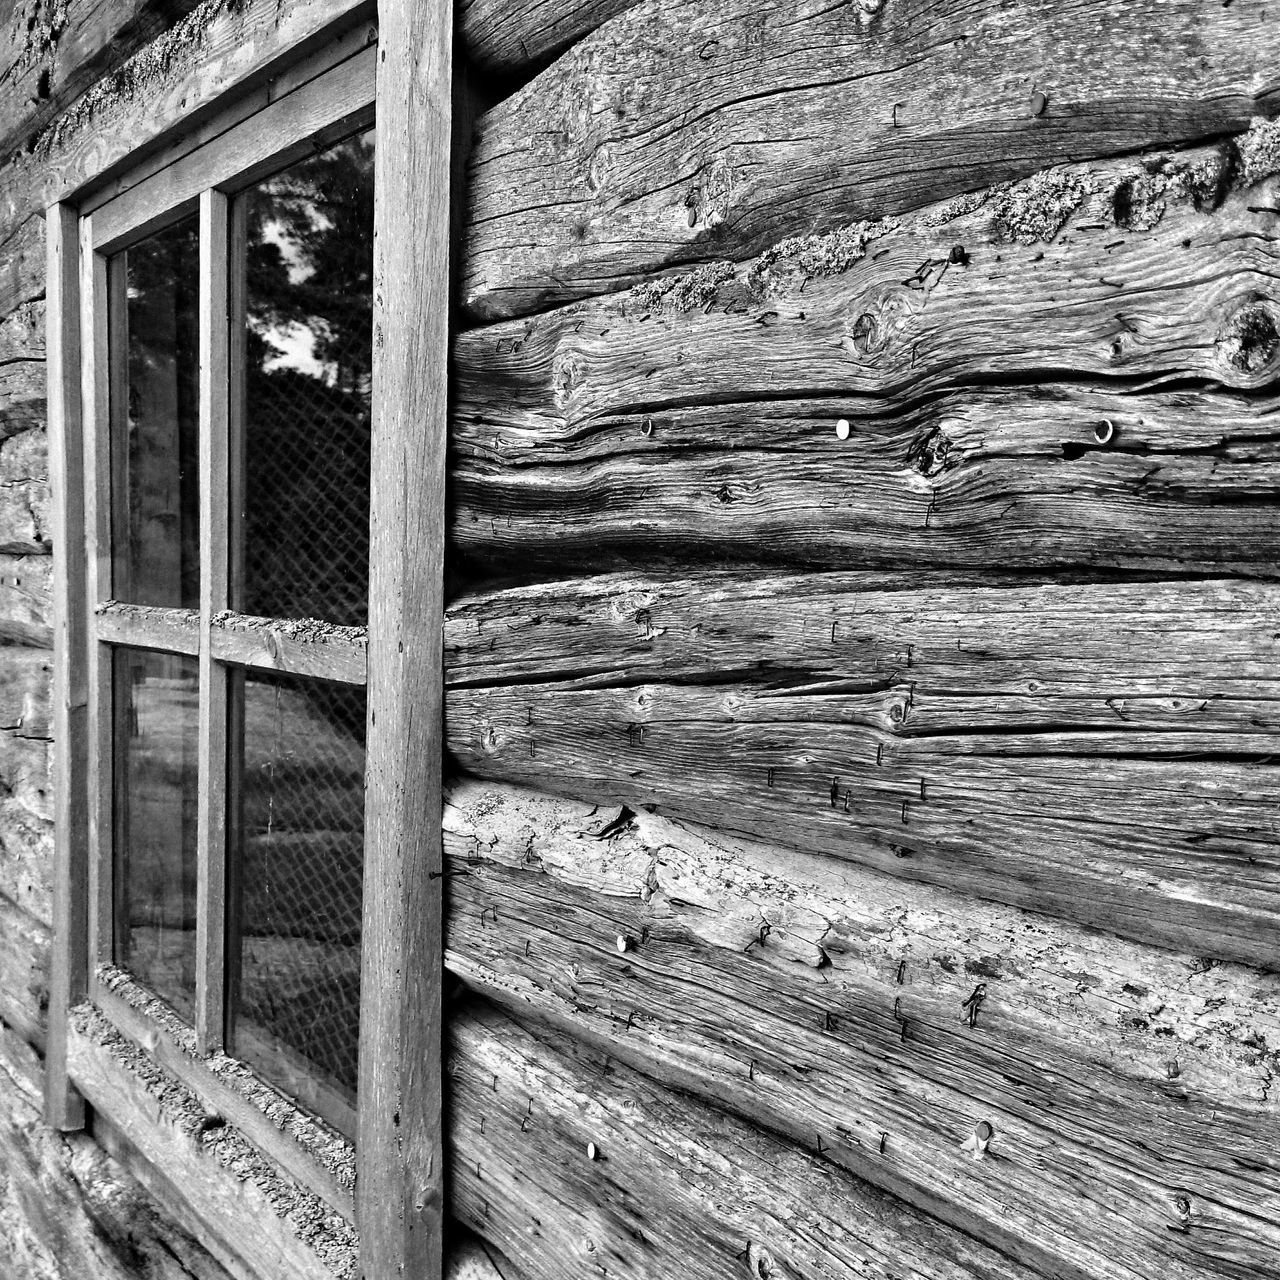 Blackandwhite Photography Preserved Black & White Black And White Collection  Contryhouse Window Timbered House Scandinavia Aland Islands åland  Reflection_collection Reflection EyeEmBestPics EyeEm Gallery Architectural Detail Architectural Feature Idyllic Home is Where the Art is Black And White Wood - Material Blackandwhite Europe Built Structure Building Exterior Outdoors